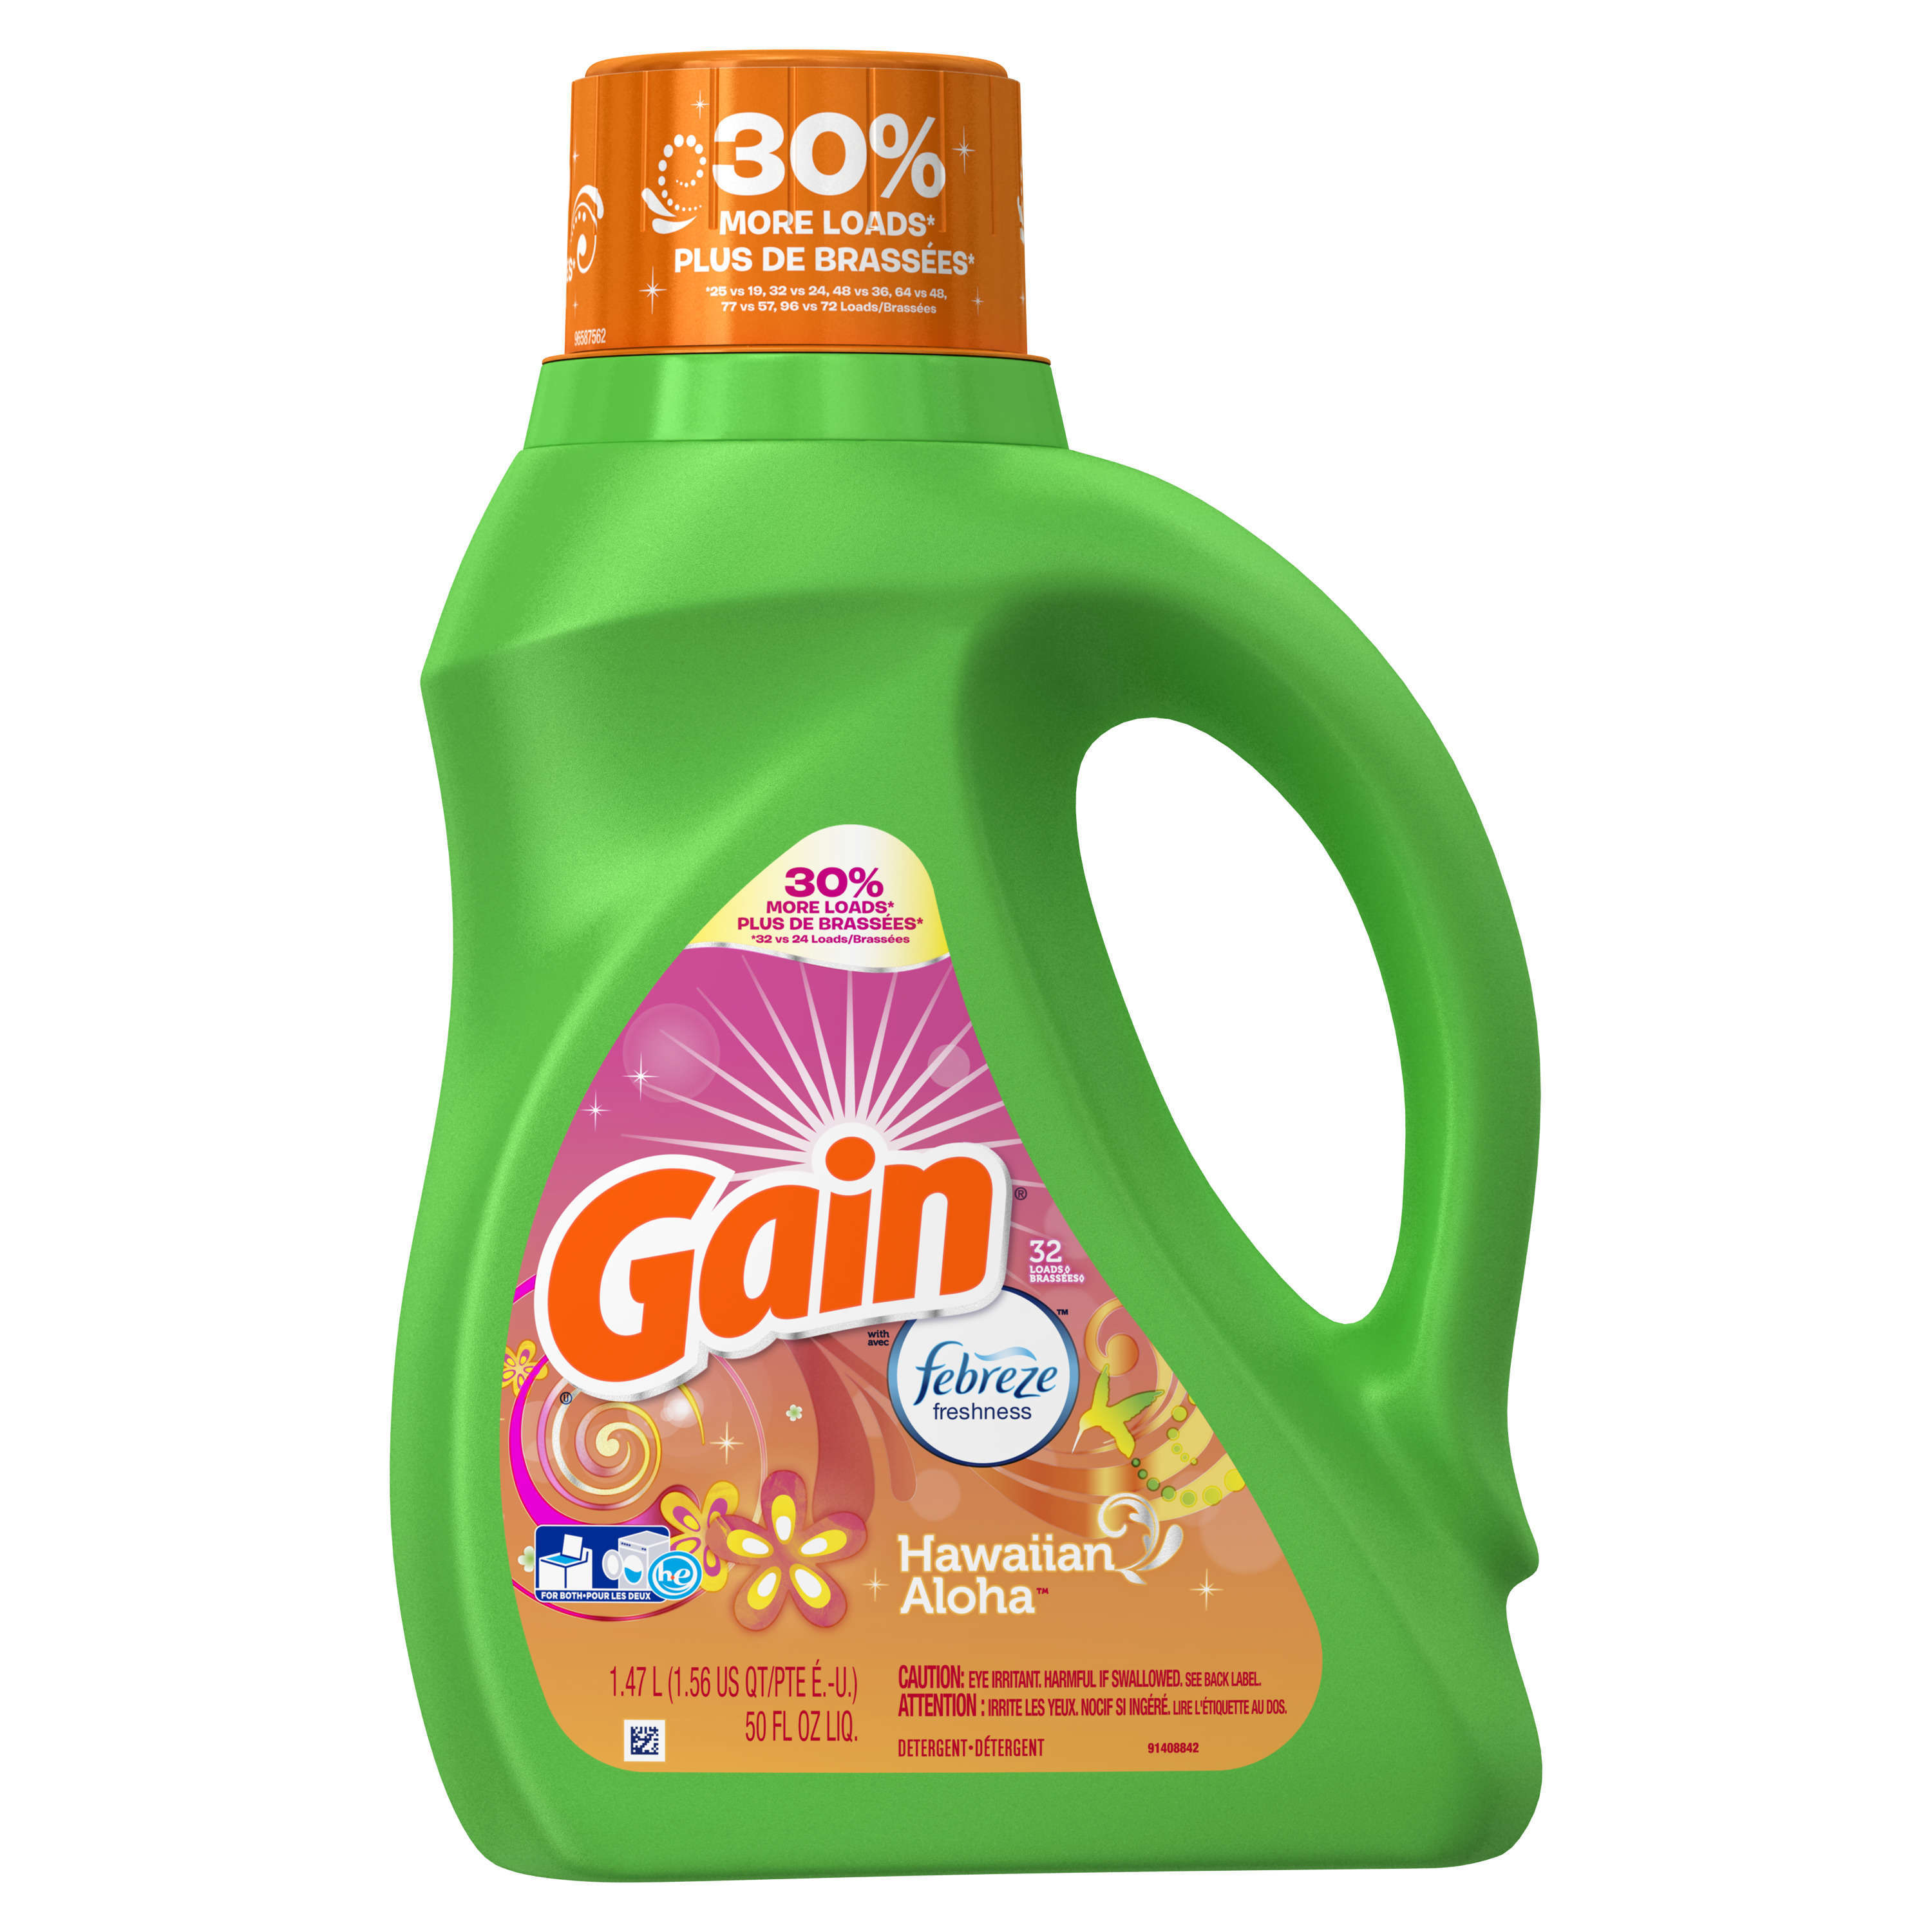 Gain Liquid Laundry Detergent with Febreze Freshness, Hawaiian Aloha, 32 Loads 50 fl oz